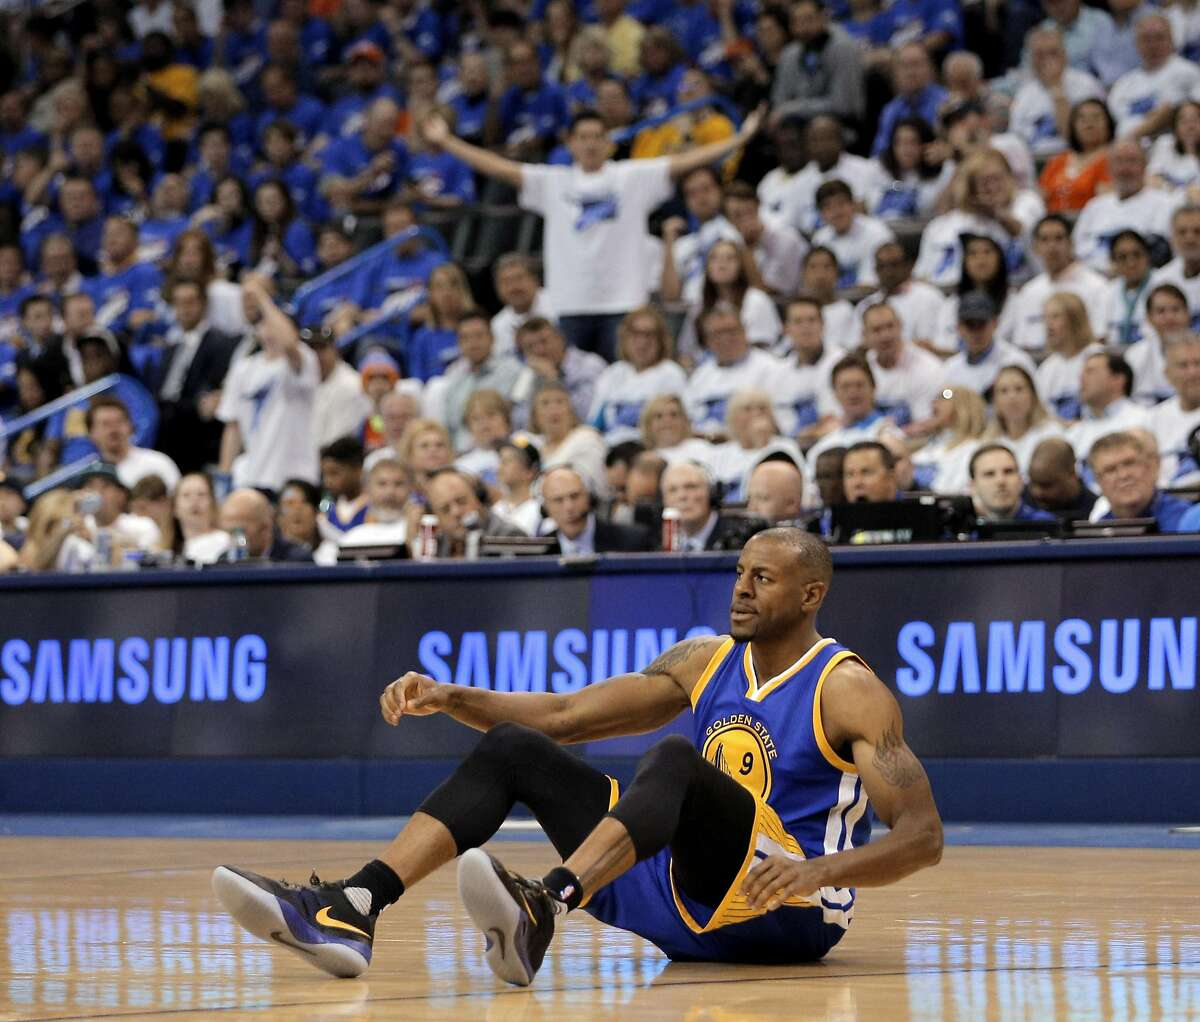 Andre Iguodala (9) sits on the floor after getting fouled during the second half as the Golden State Warriors played the Oklahoma City Thunder in Game 3 of the Western Conference Finals at Chesapeake Energy Arena in Oklahoma City, Okla., on Sunday, May 22, 2016.